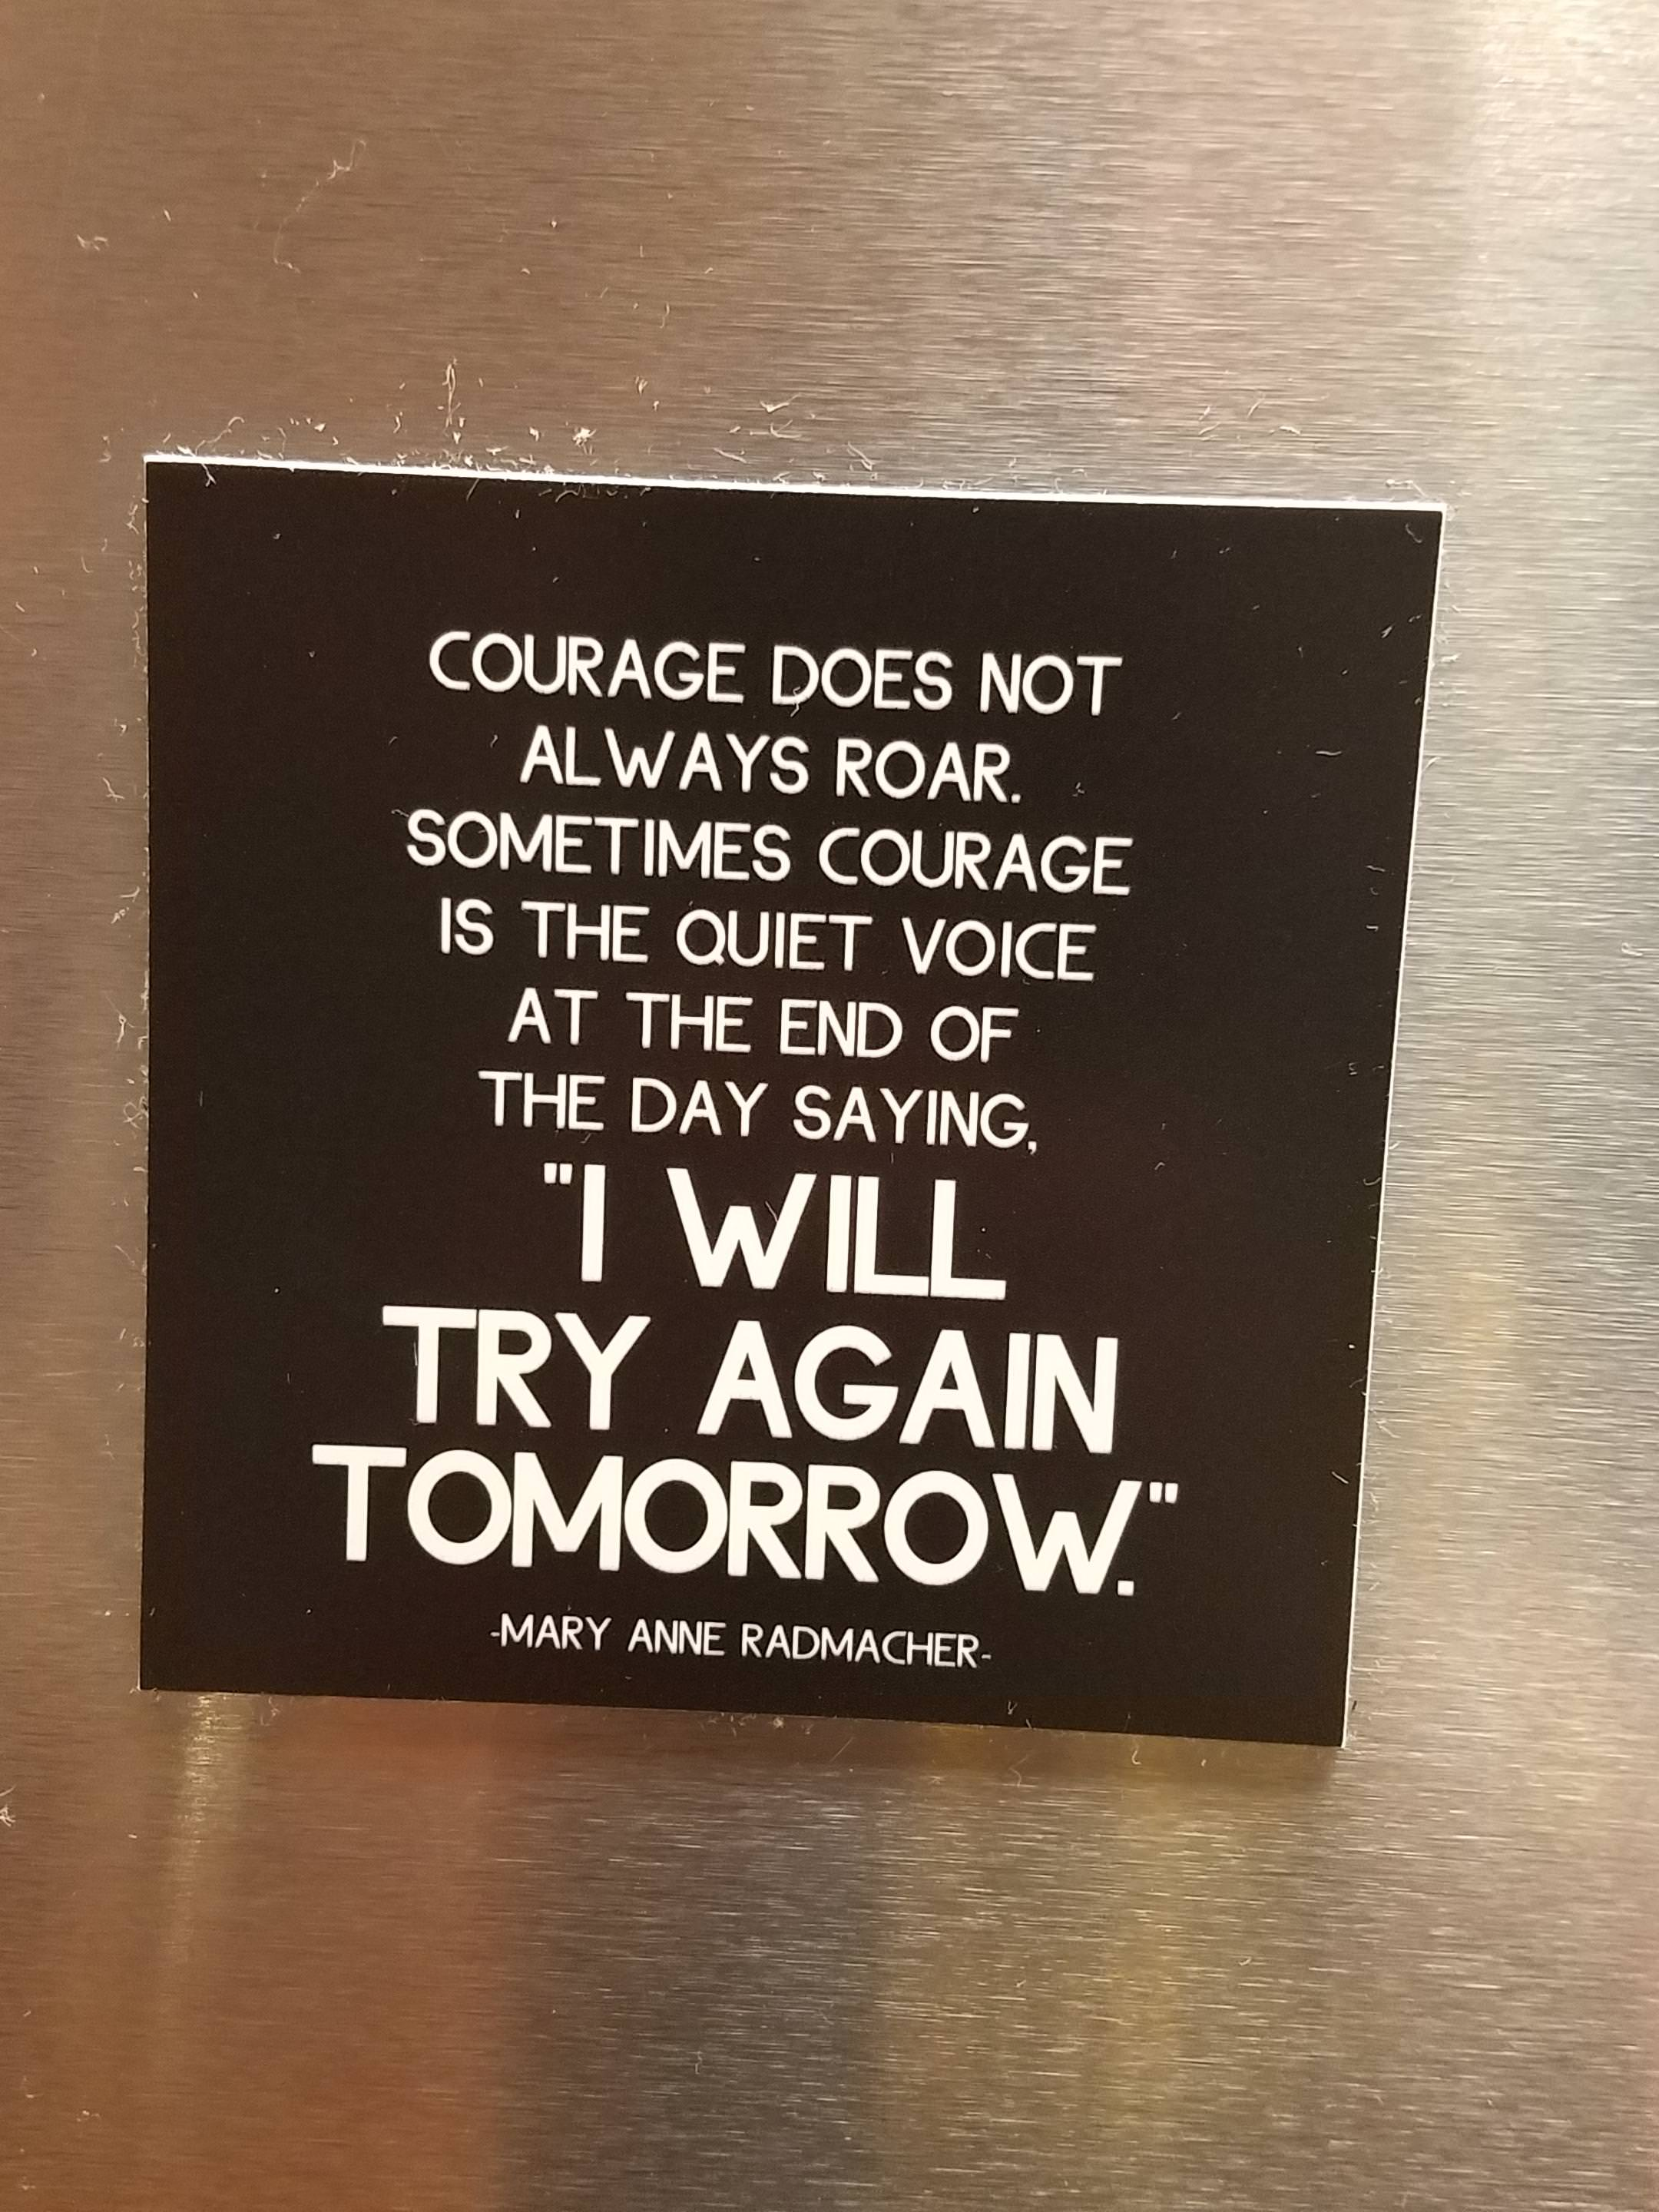 [IMAGE] This was posted at a Ronald McDonald House where my family is staying at